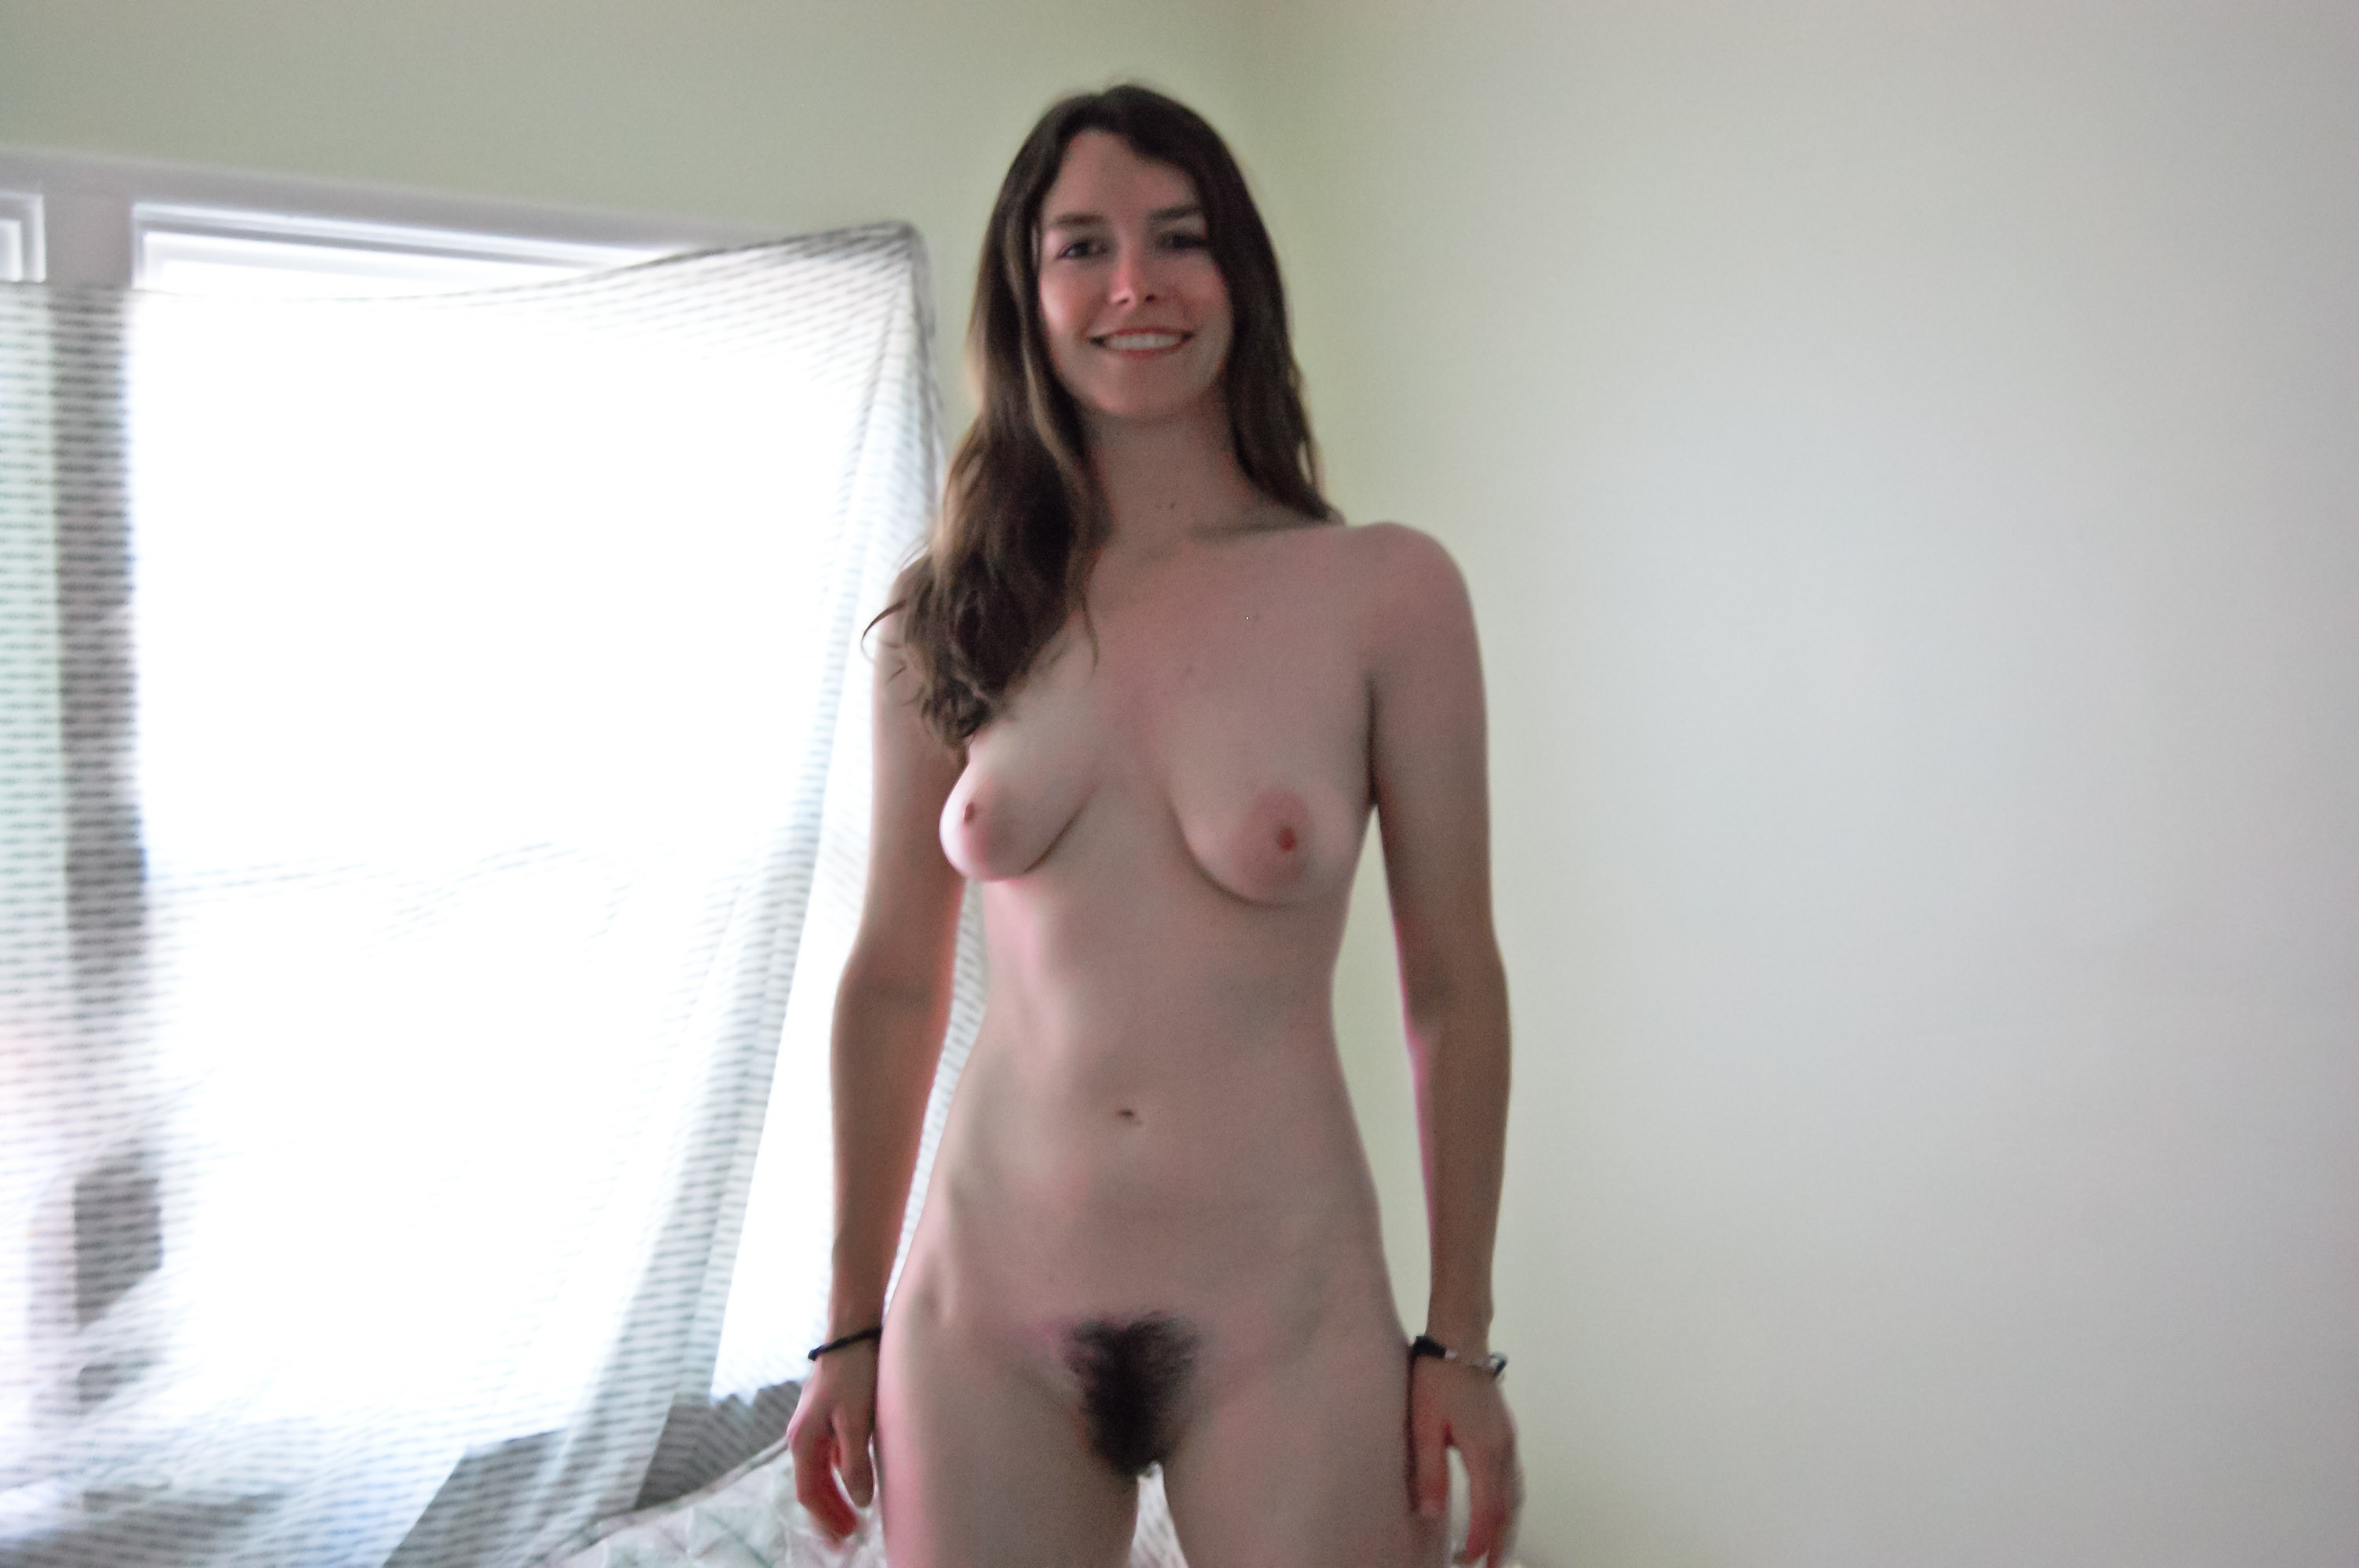 suzee free videos watch download and enjoy suzee porn